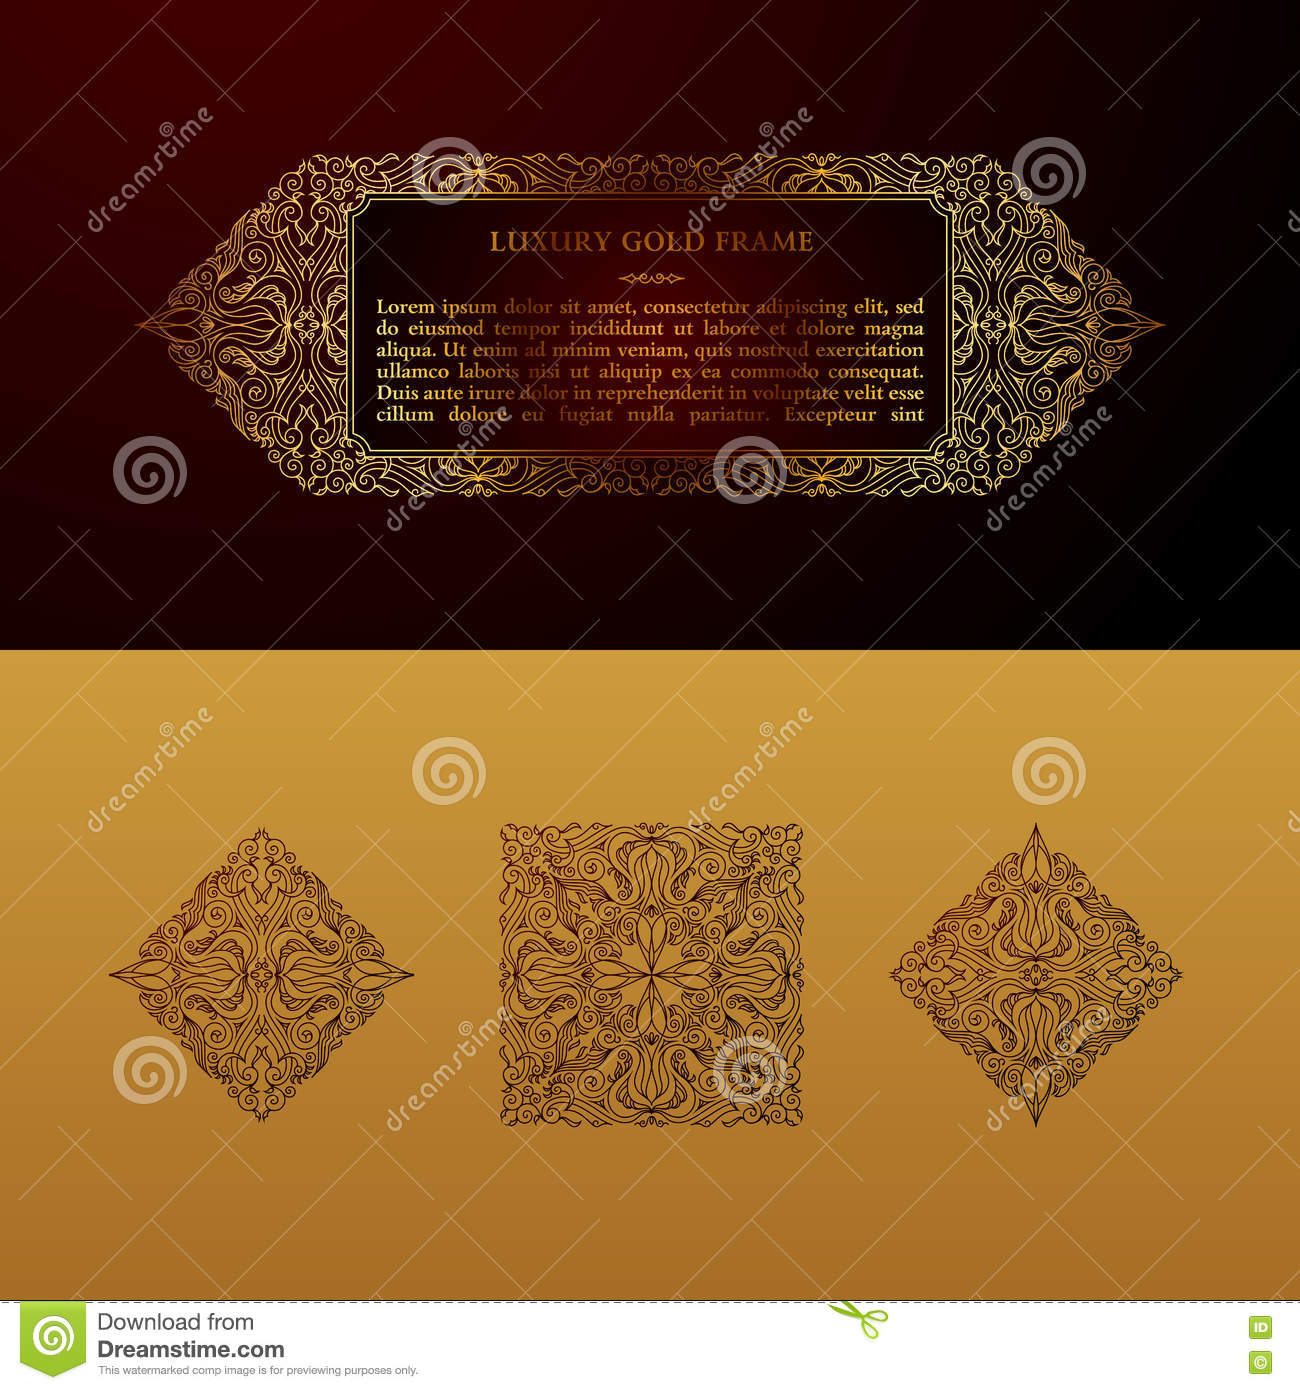 Arabic powerpoint template quantumgaming free islamic powerpoint templates gallery templates example free powerpoint templates toneelgroepblik Image collections